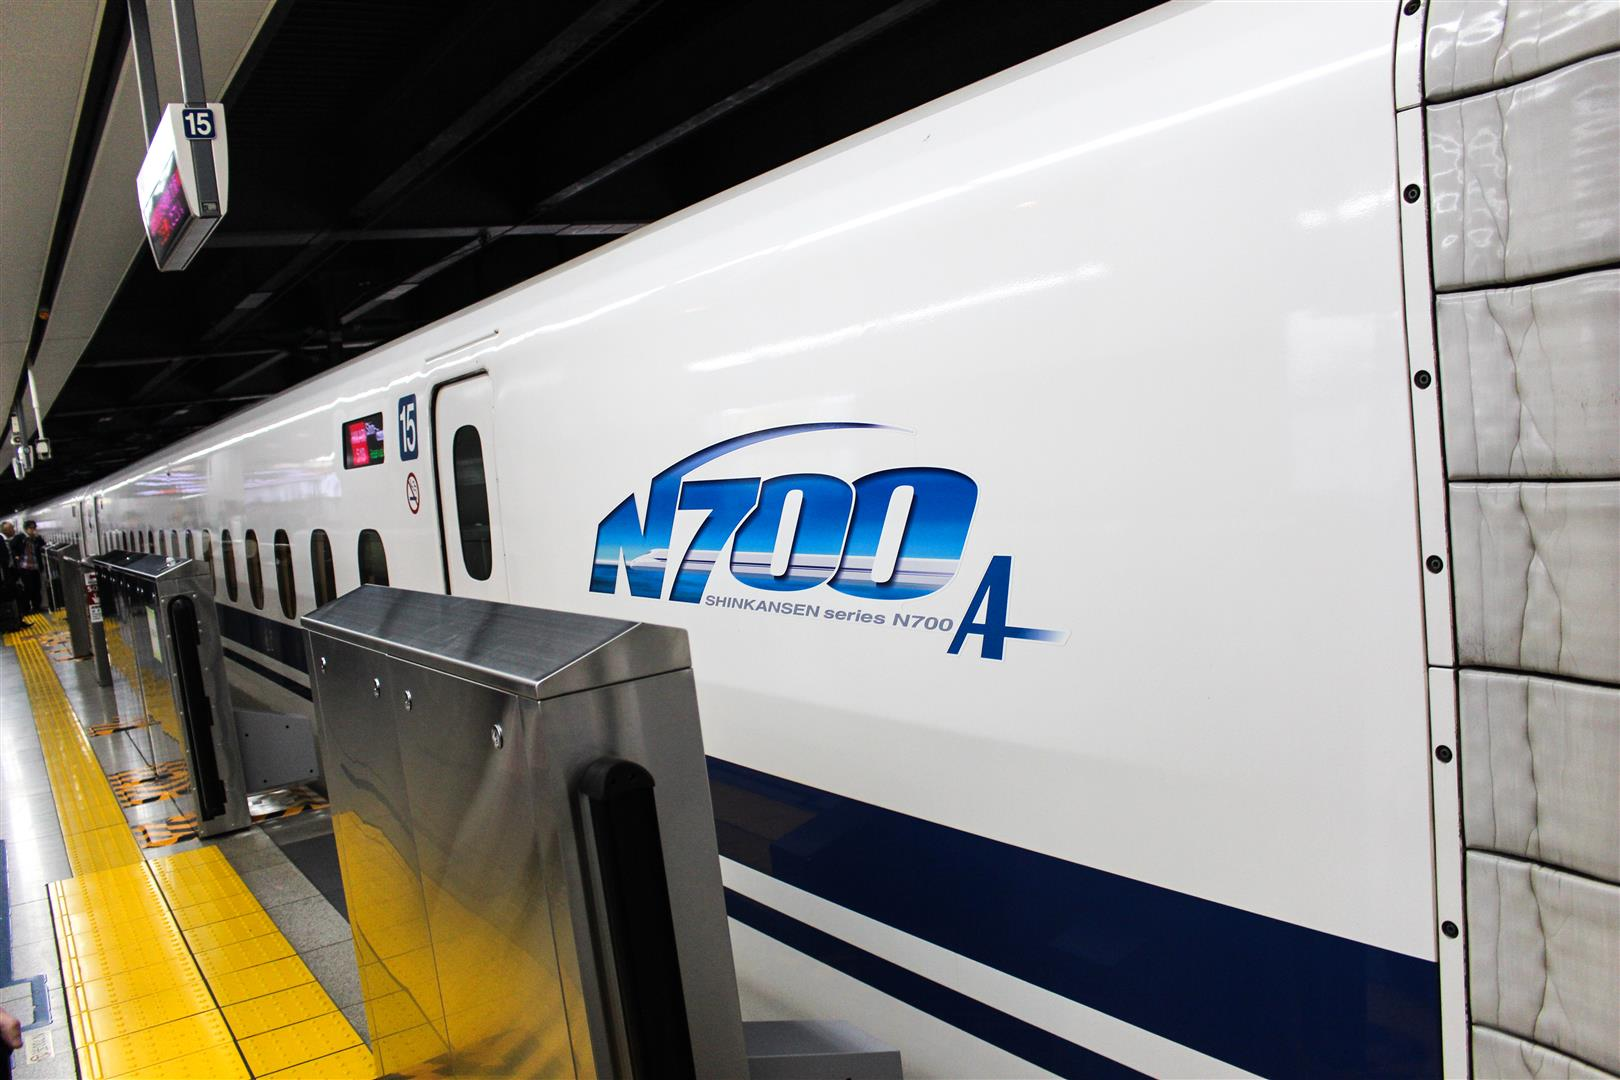 For the price of a plane ticket, you may just be able to take the Shinkansen close to your hotel!